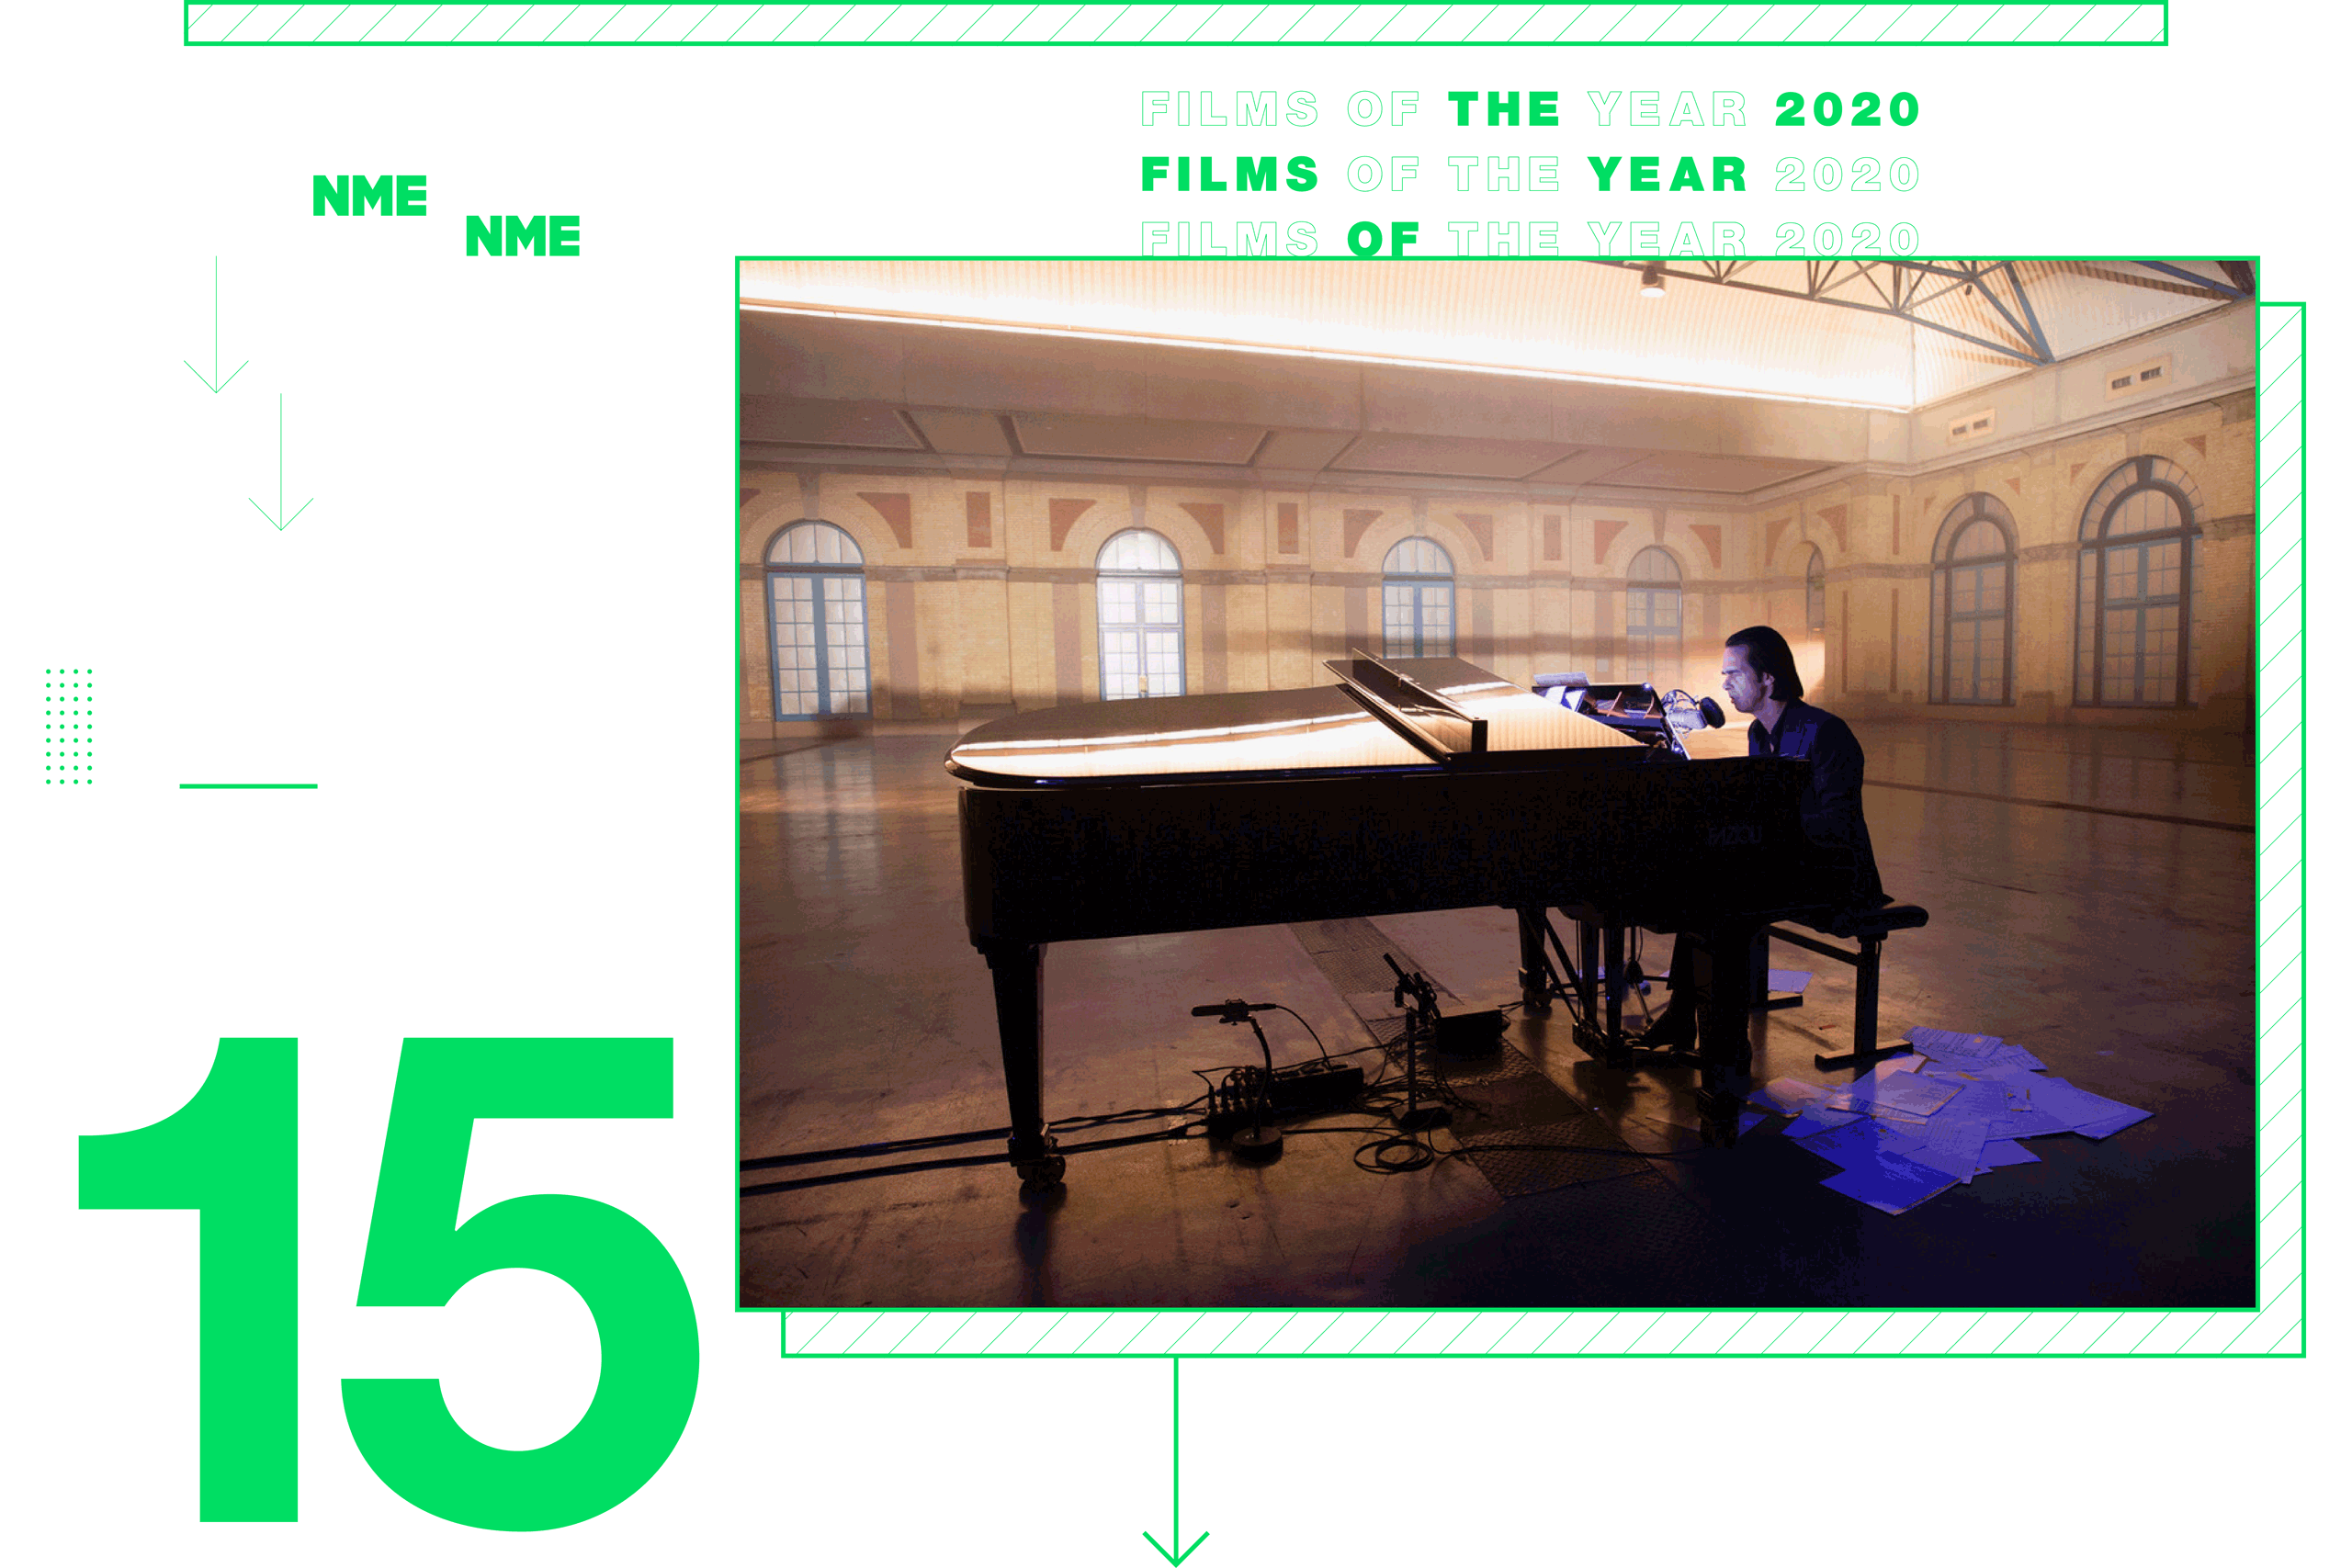 NME Global Films of the Year Idiot Prayer: Nick Cave Alone At Alexandra Palace